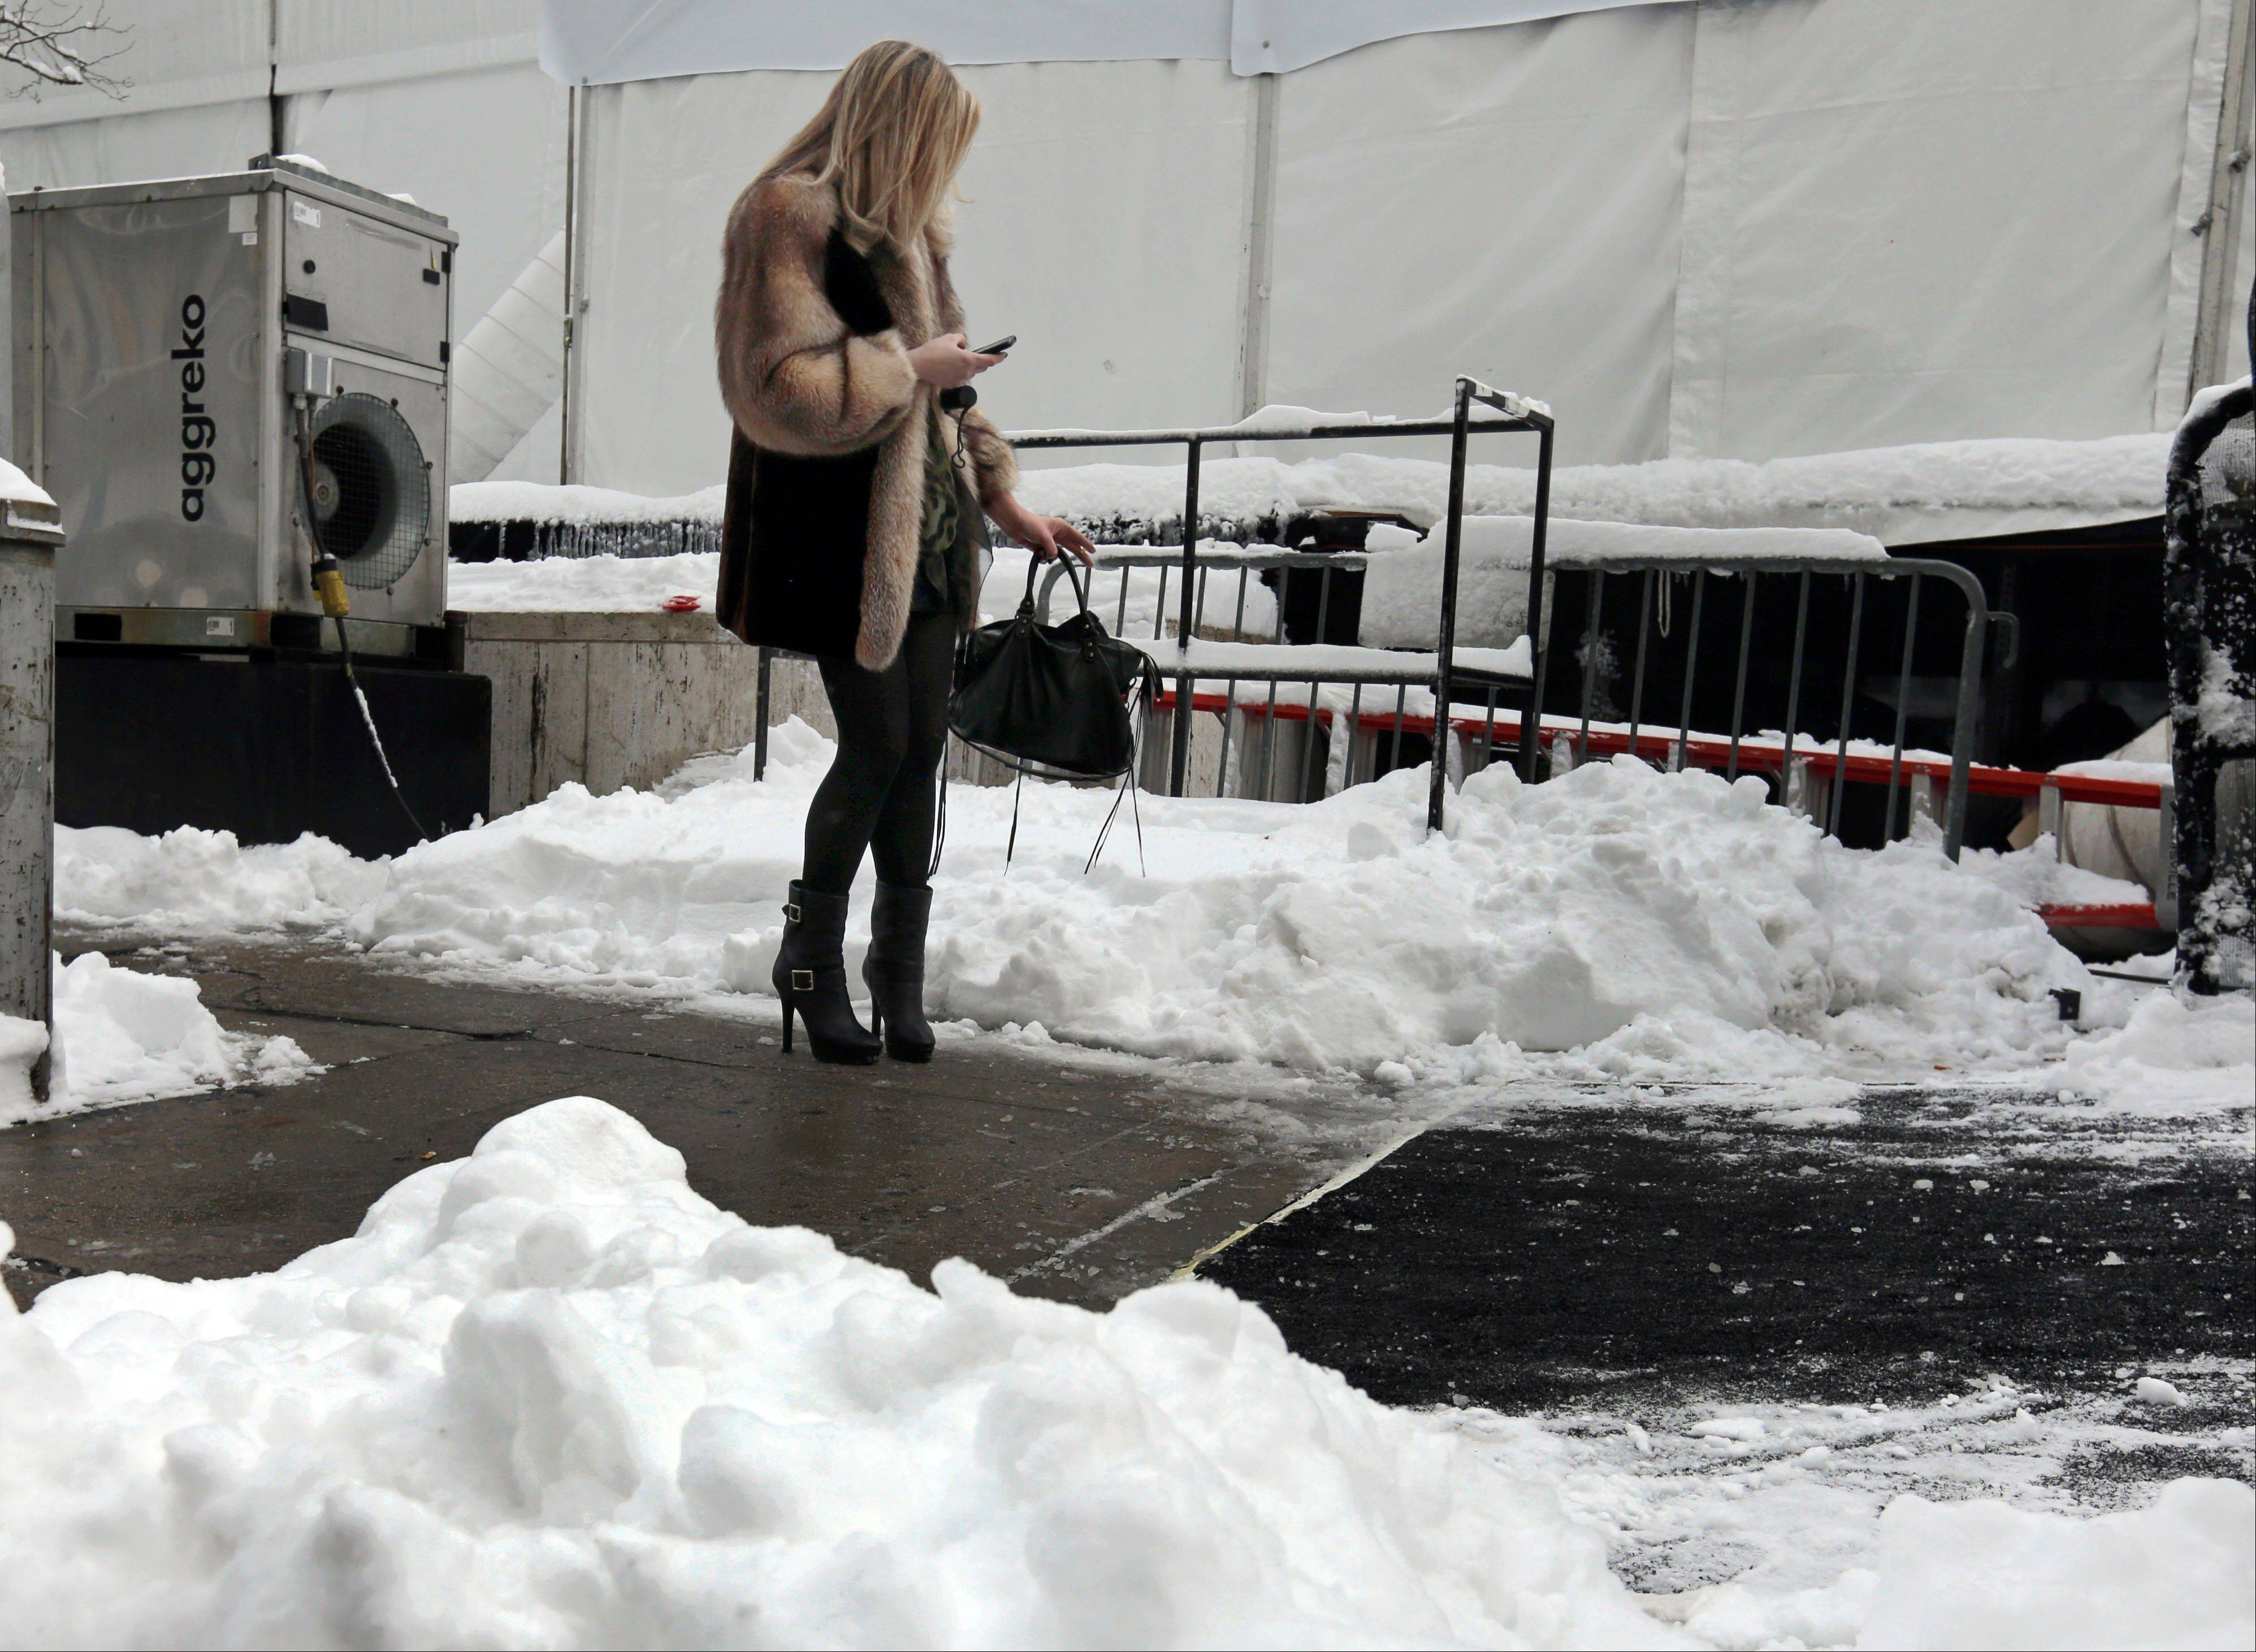 Social media keeps people together during blizzard